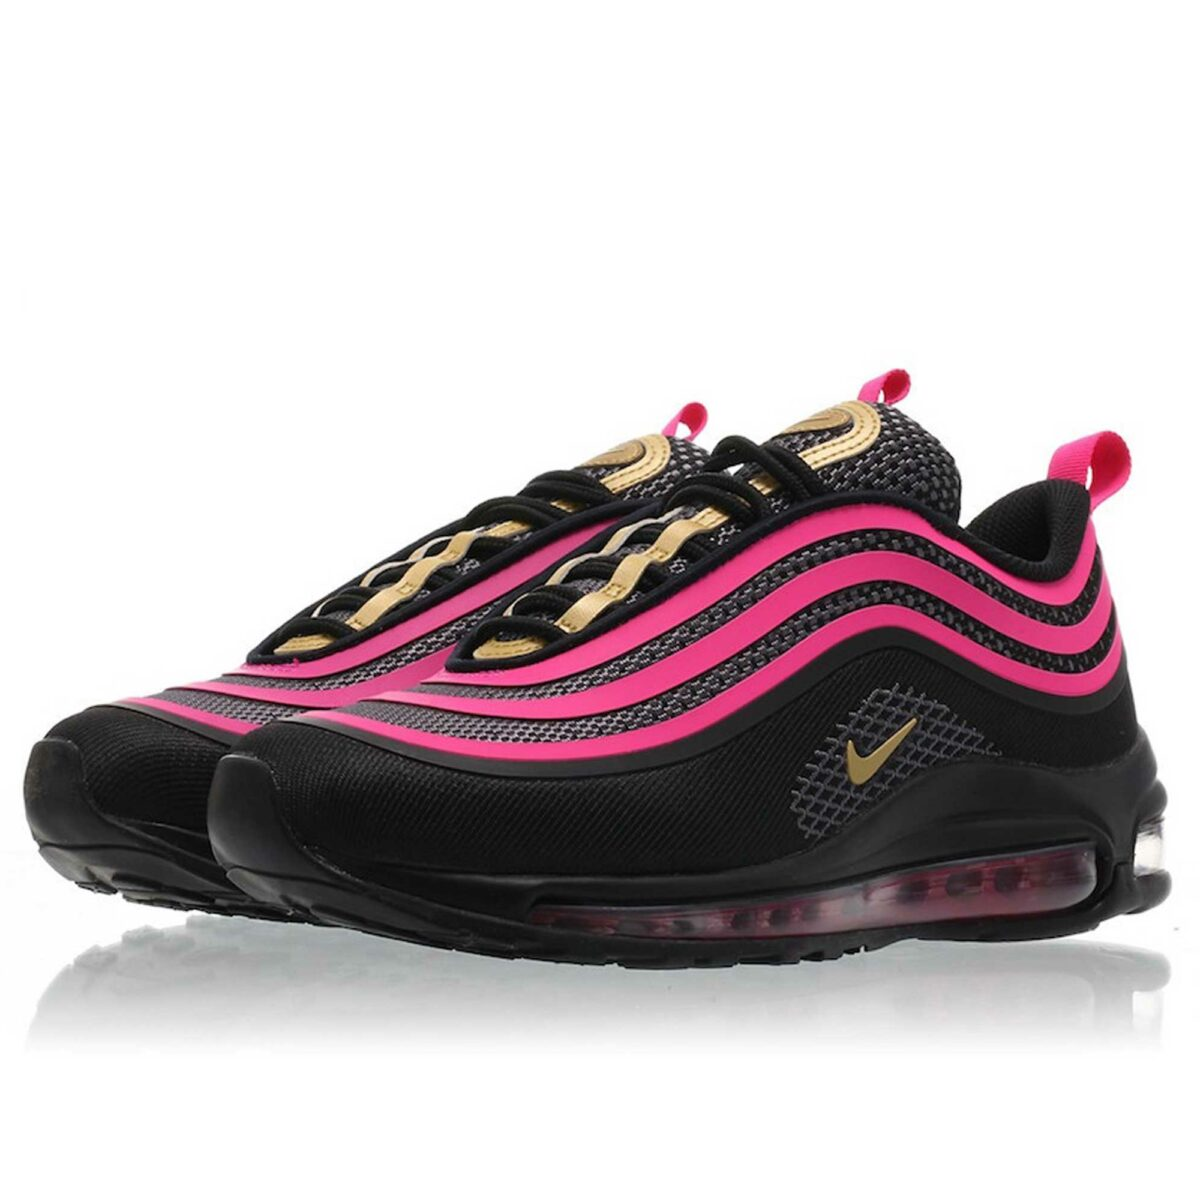 nike air max 97 ultra pink prime 917999_002 купить